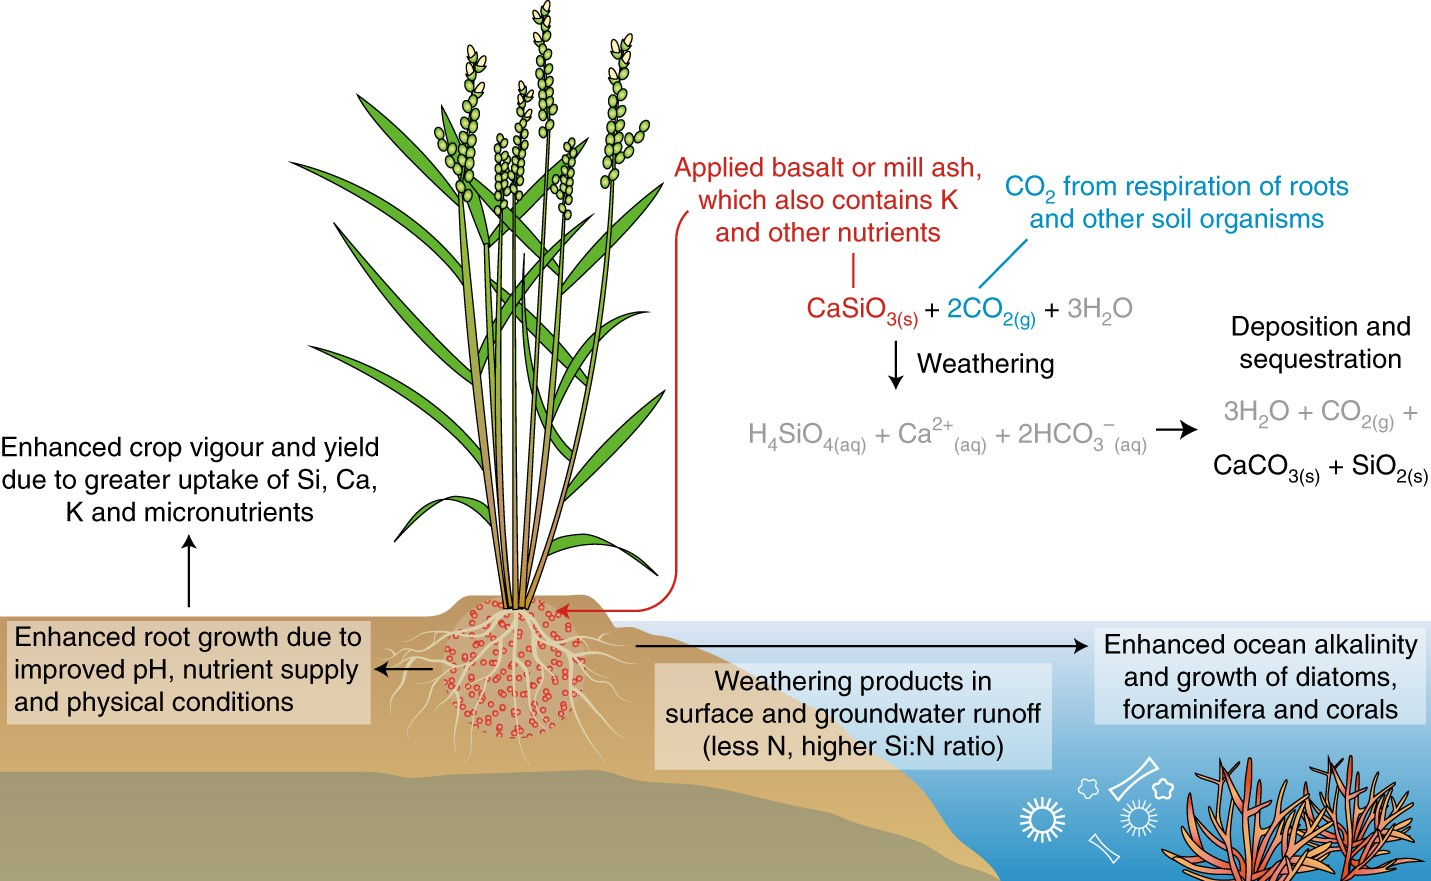 Farming with crops and rocks to address global climate, food